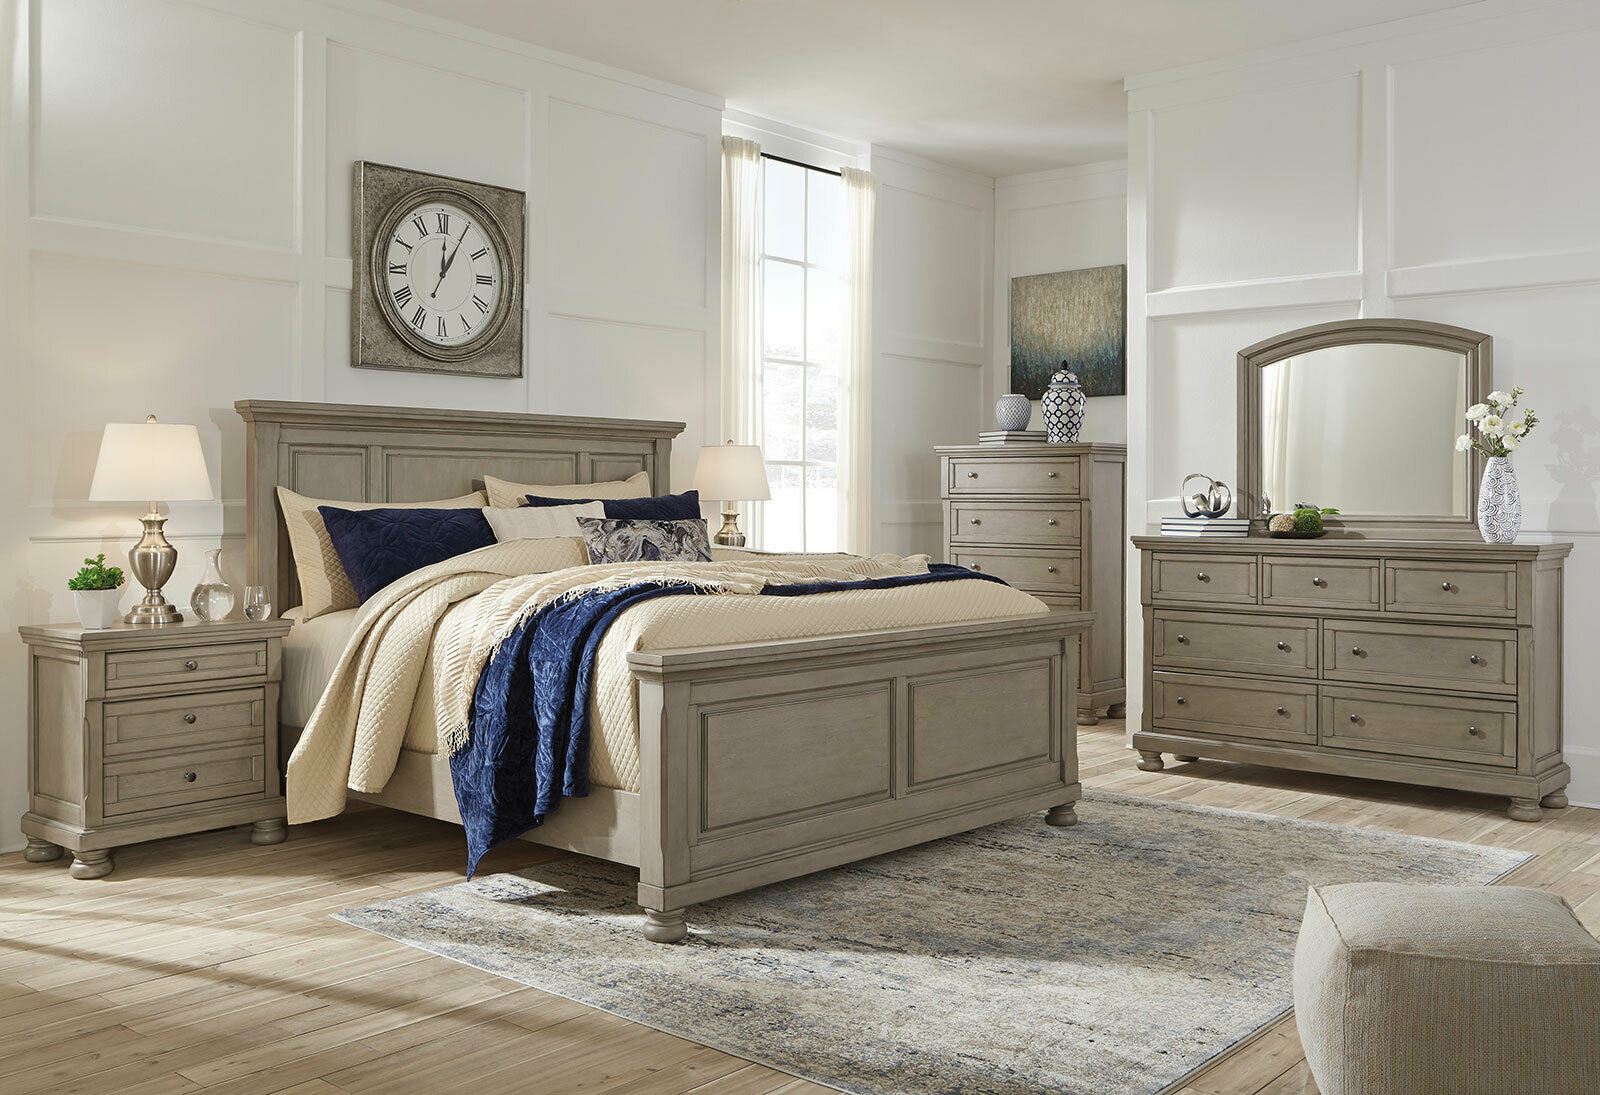 NEW Traditional Light Gray Solid Wood Bedroom Furniture - 8pcs King Bed Set  IA8Q